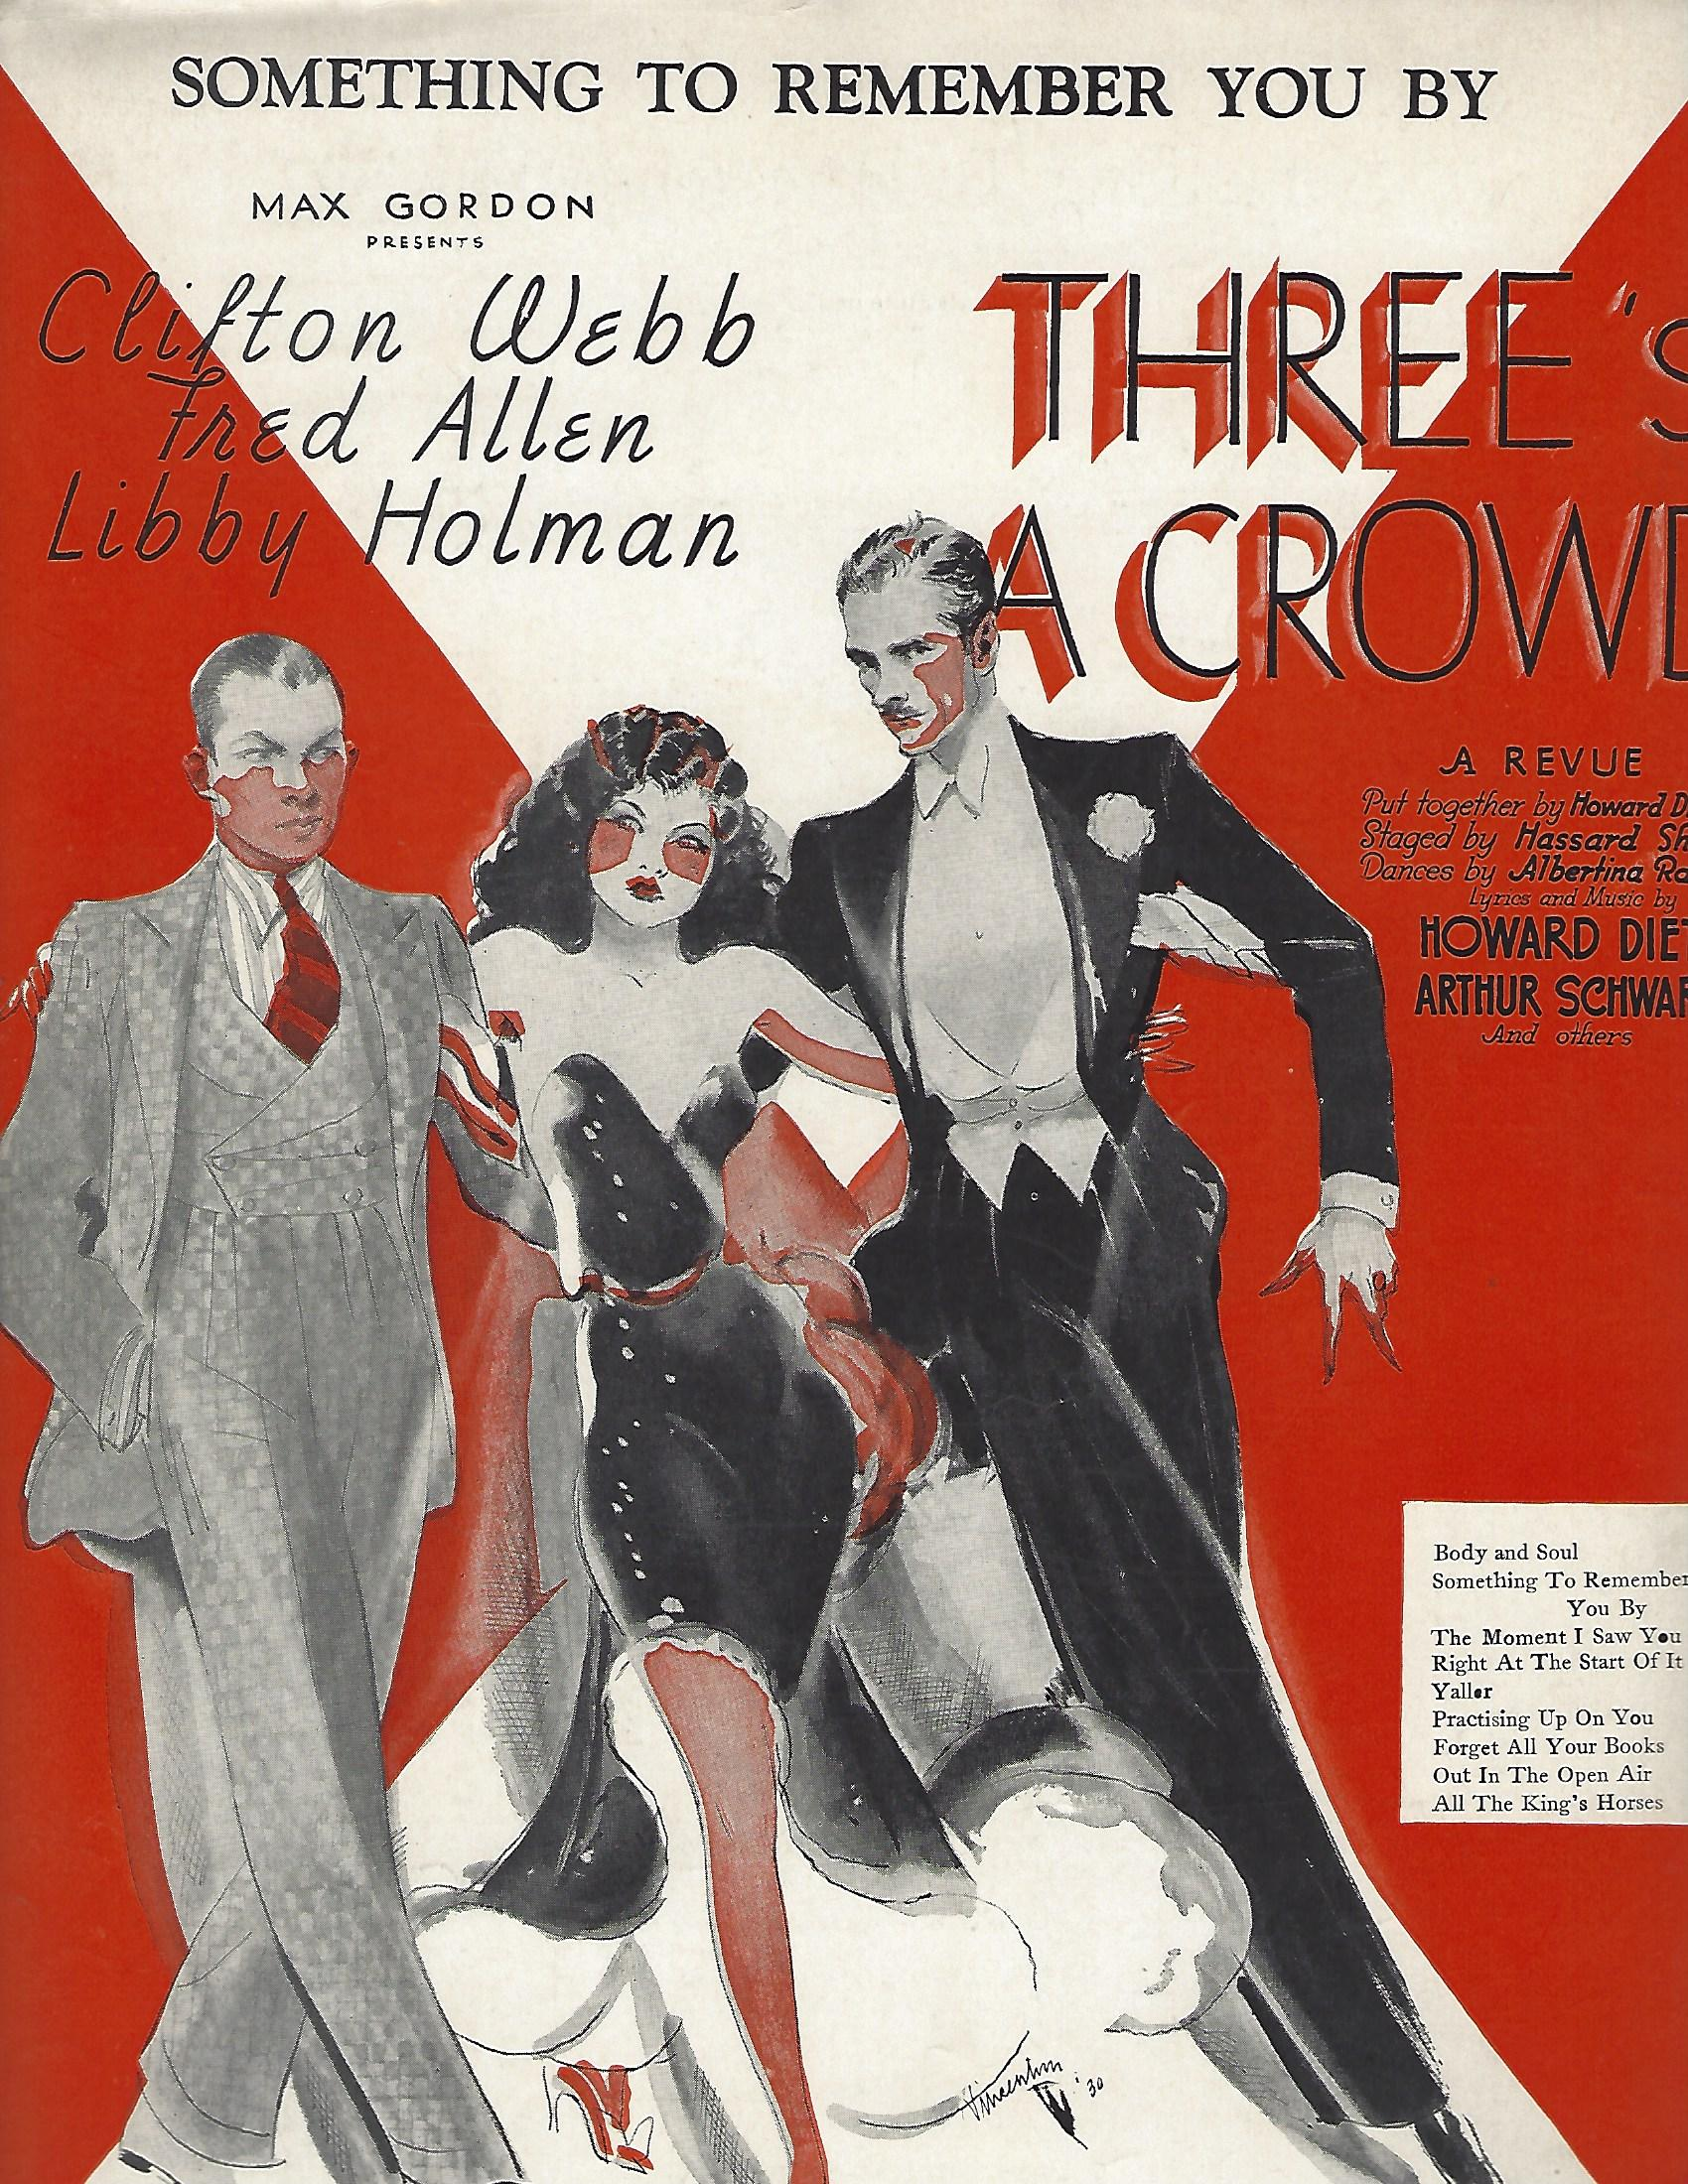 Three's a Crowd (musical) - Wikipedia